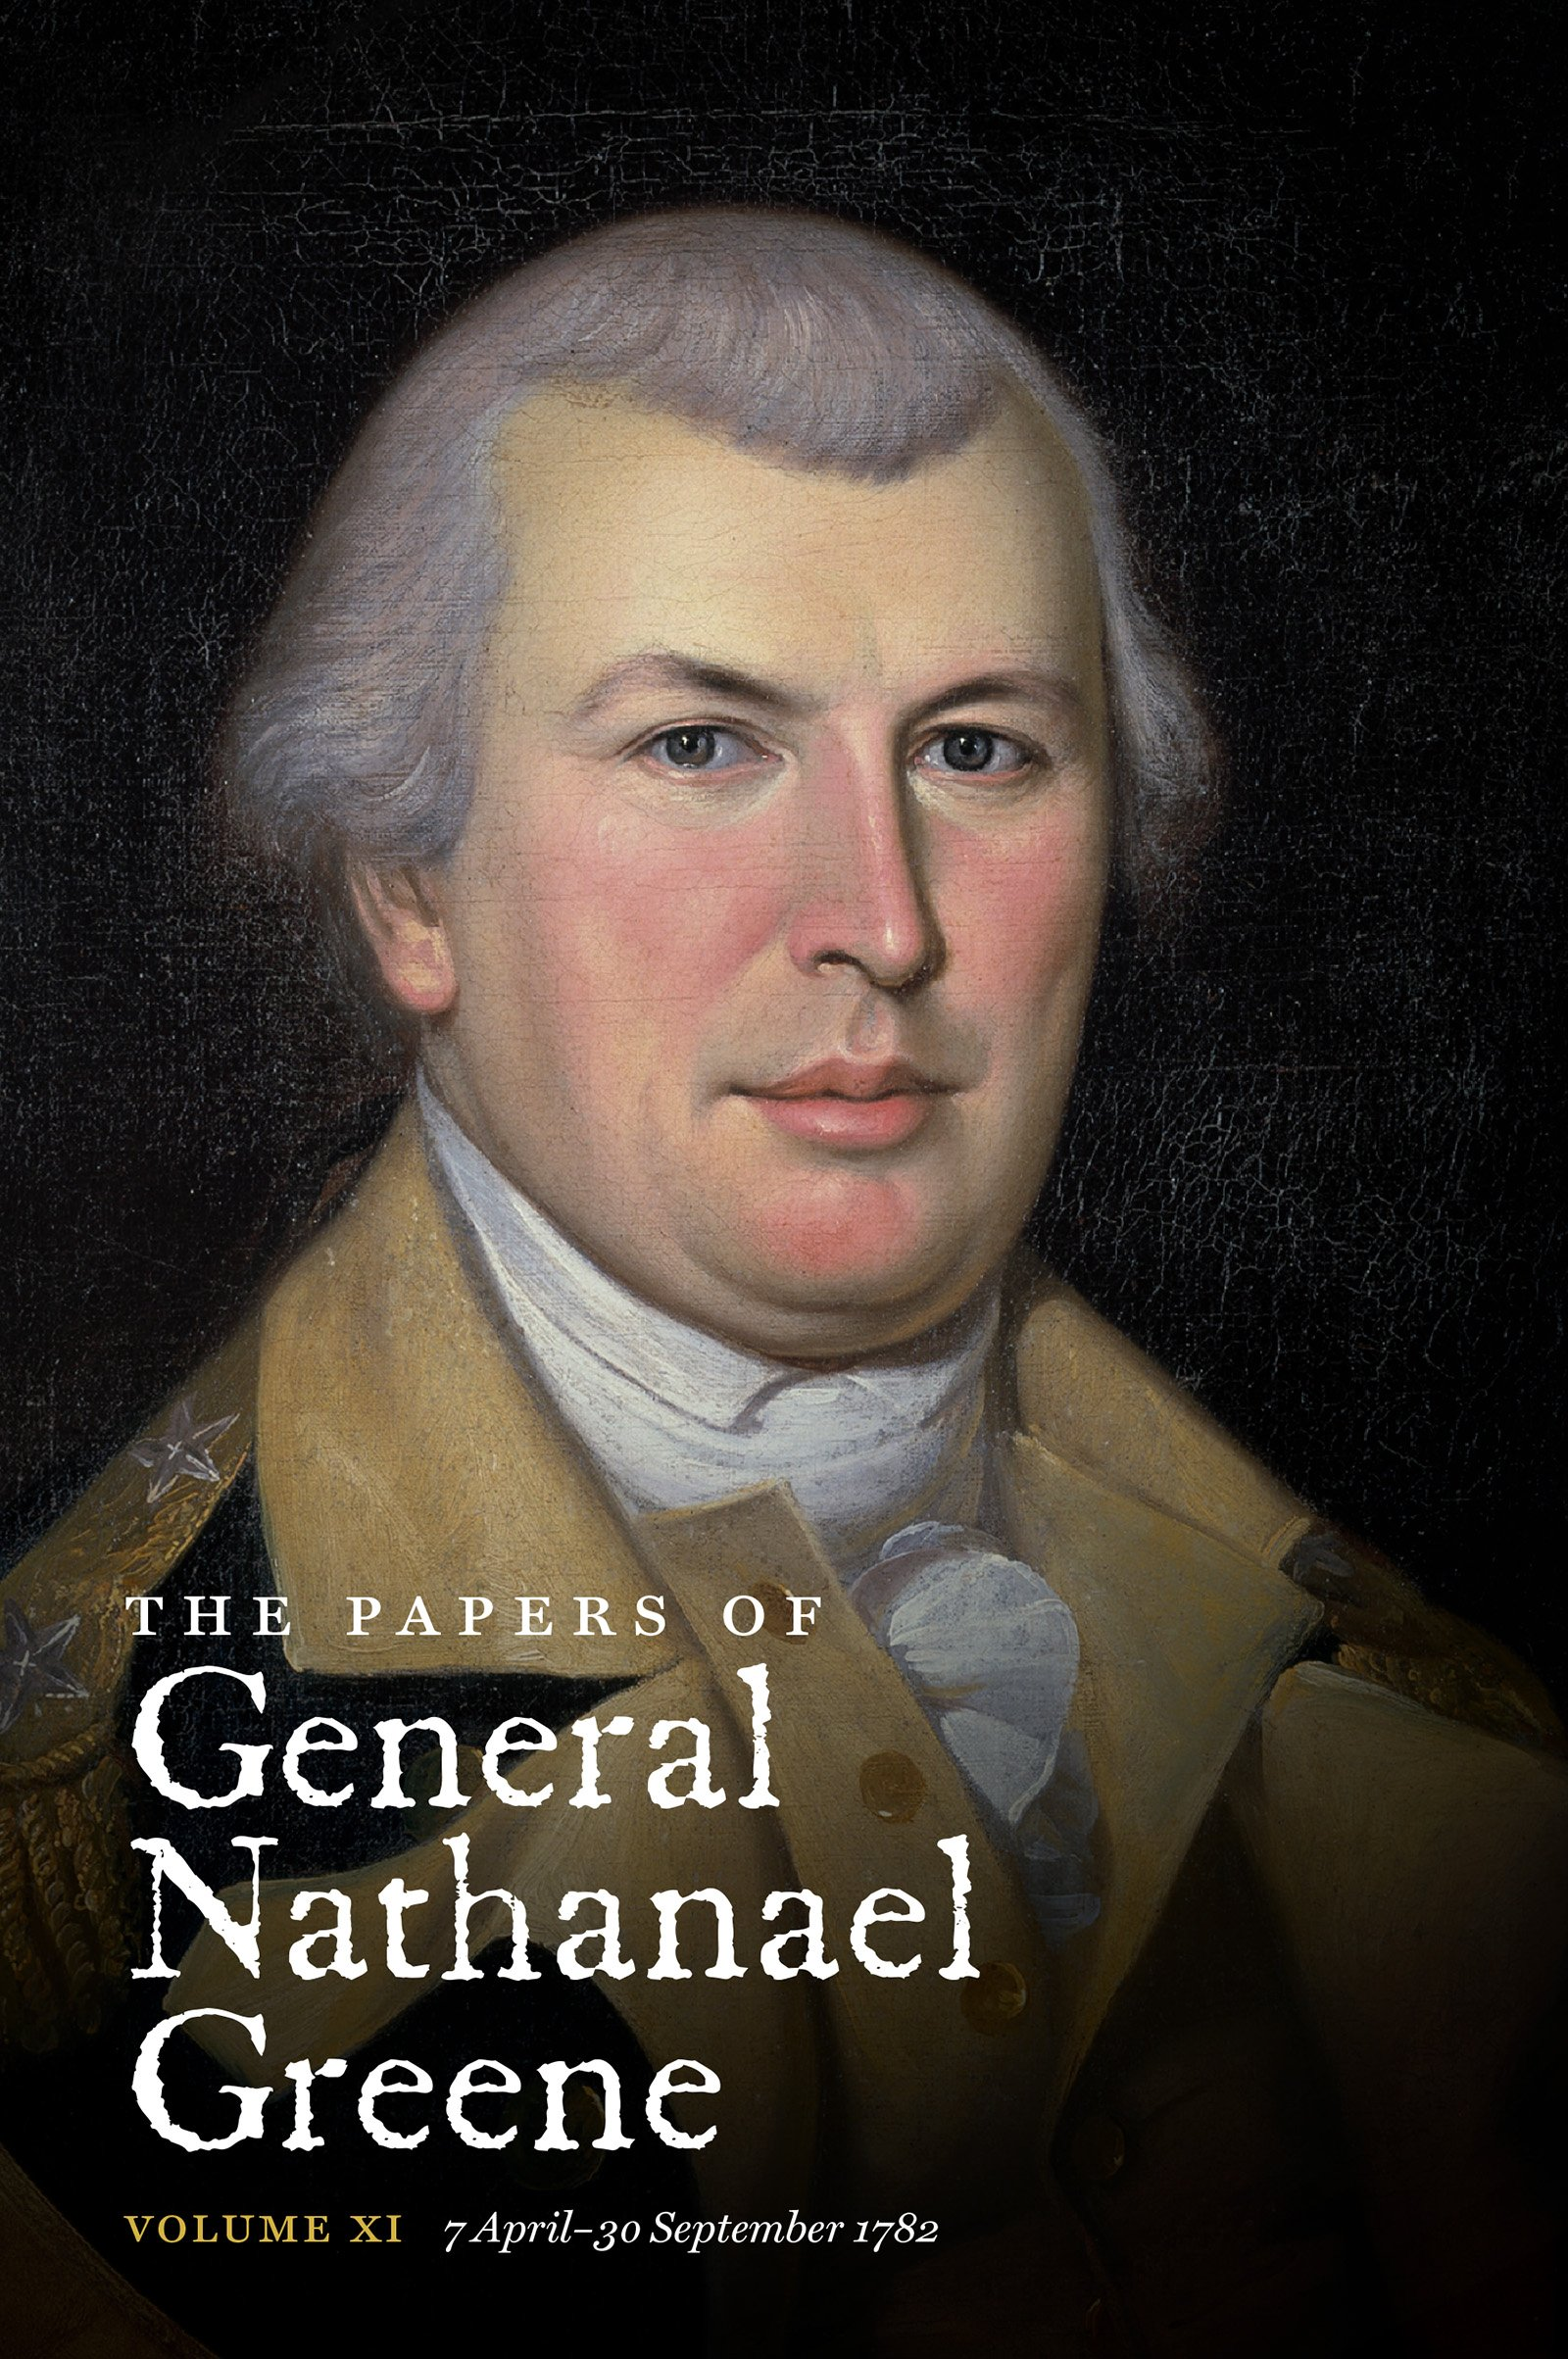 The Papers of General Nathanael Greene: Vol. XI: 7 April - 30 September 1782 (Published for the Rhode Island Historical Society)